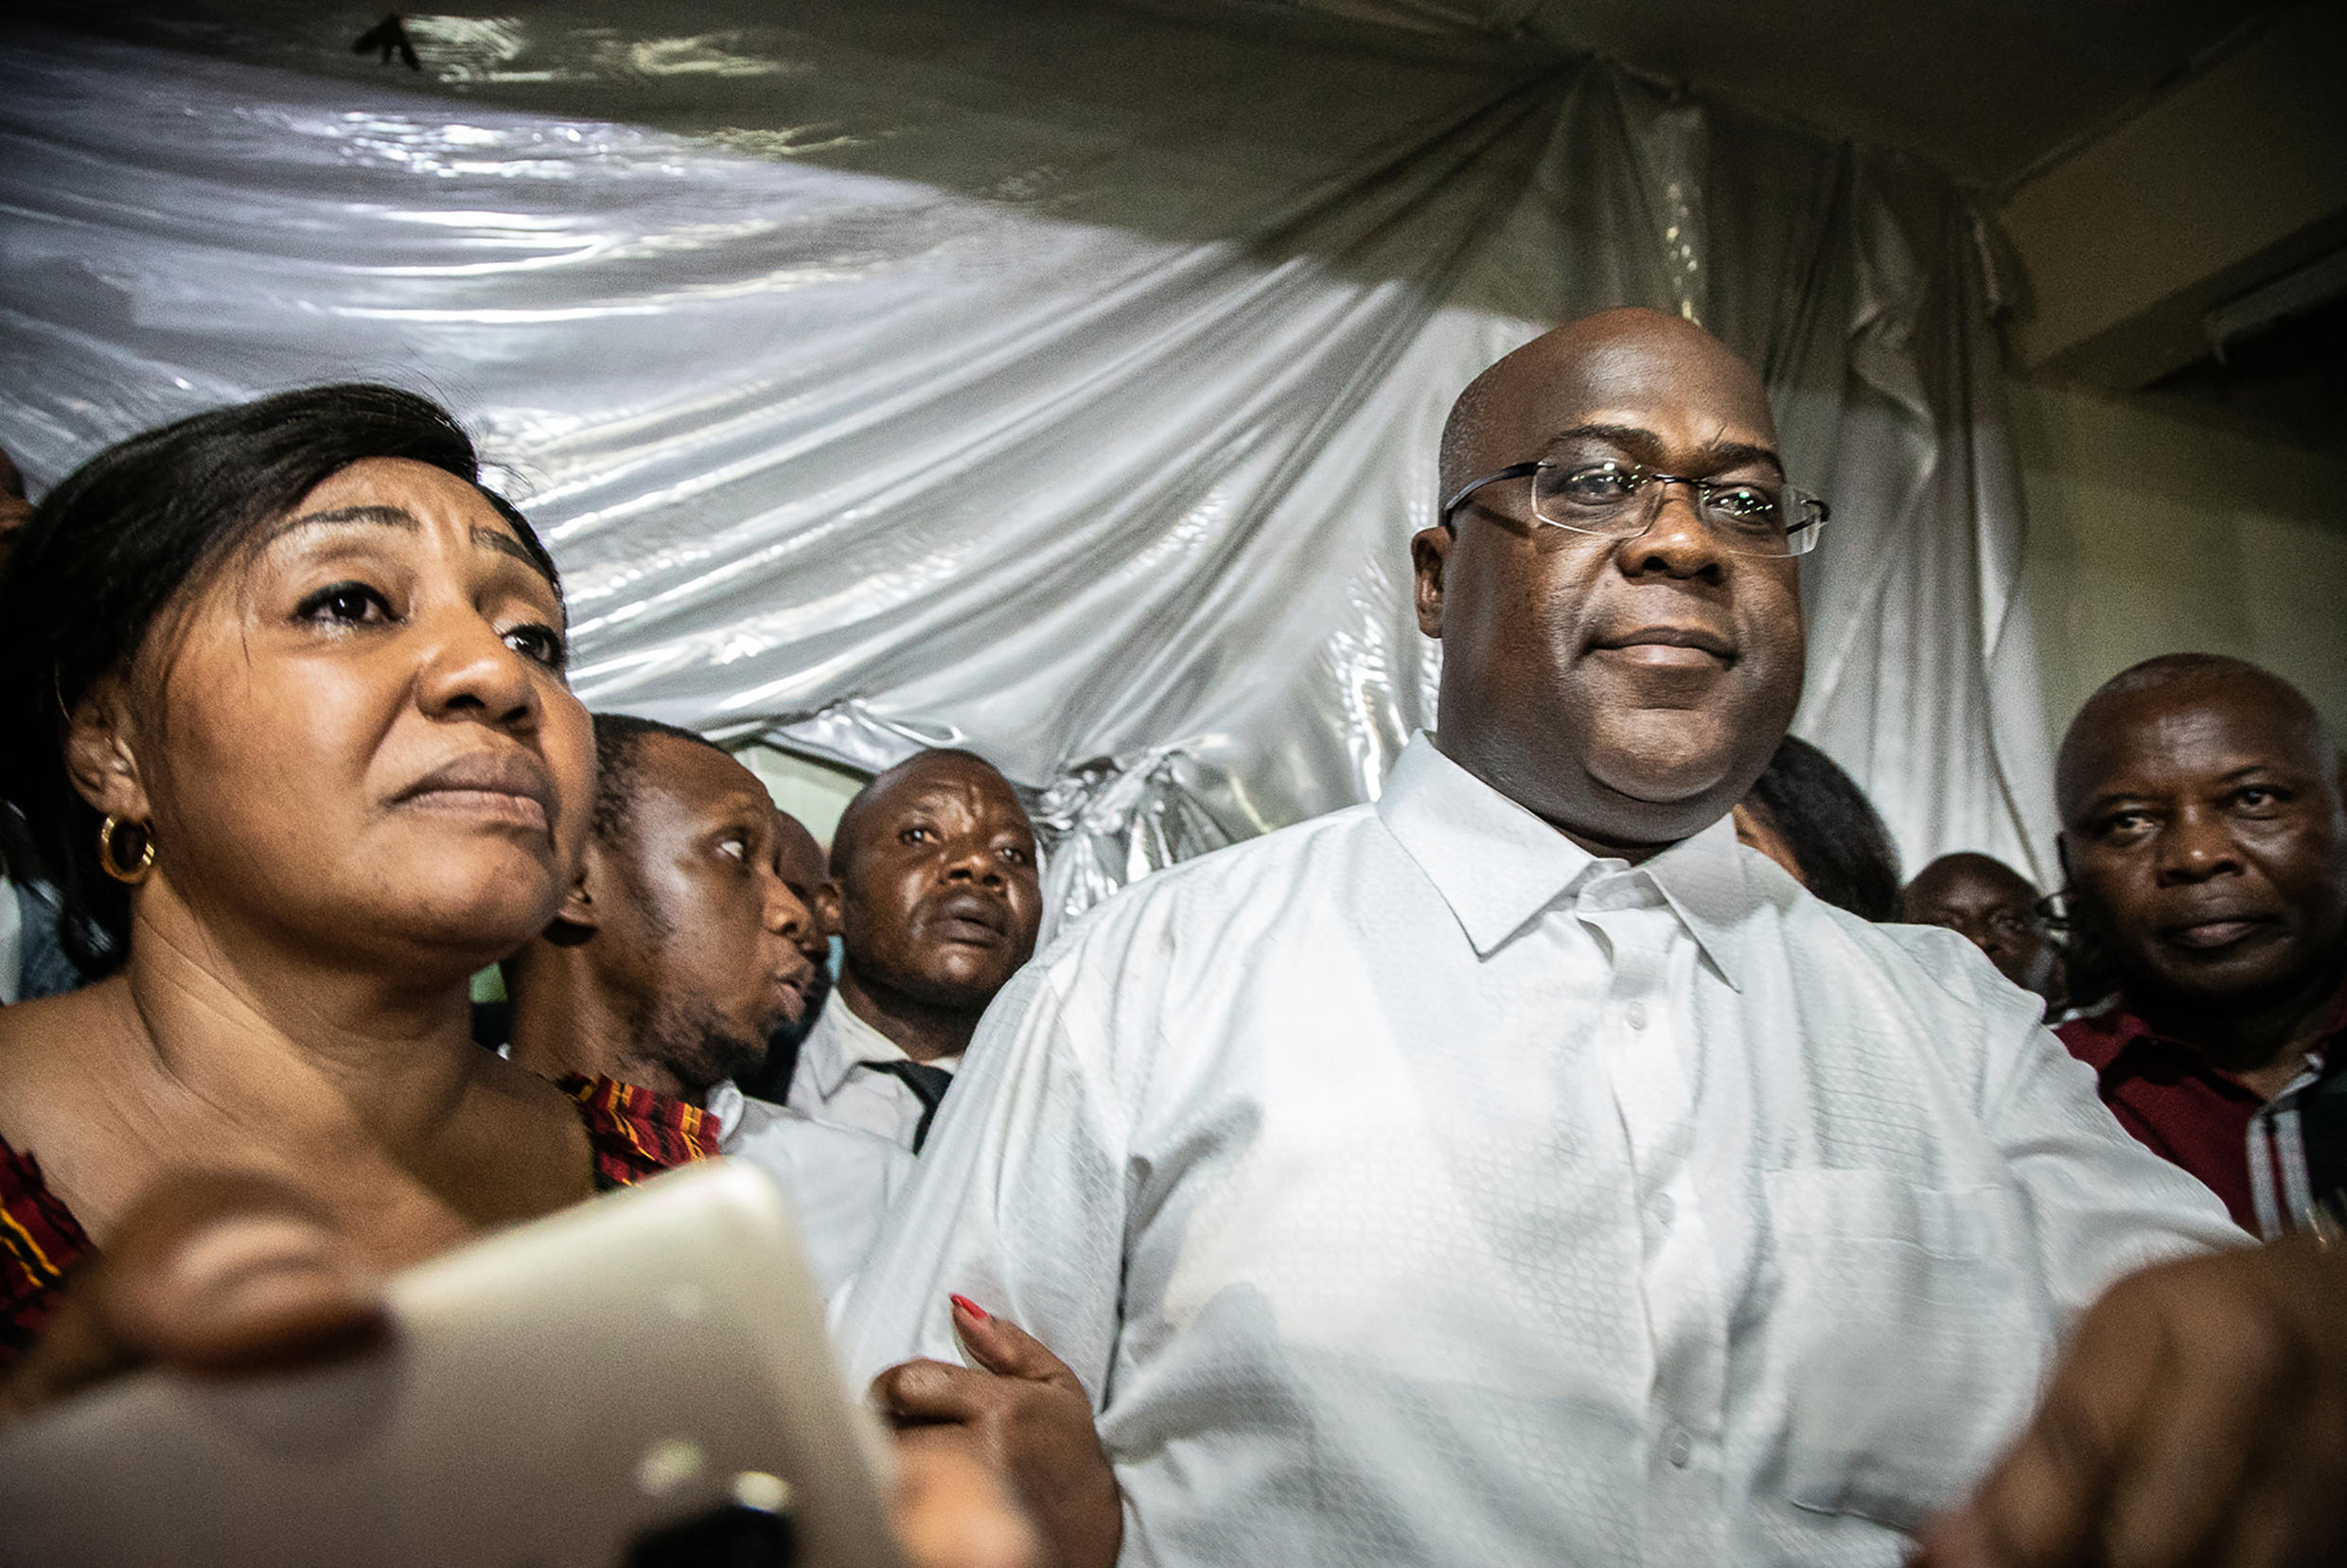 Tshisekedi reacts a few minutes after being declared winner of the presidential polls, Kinshasa, 10 January 2019.